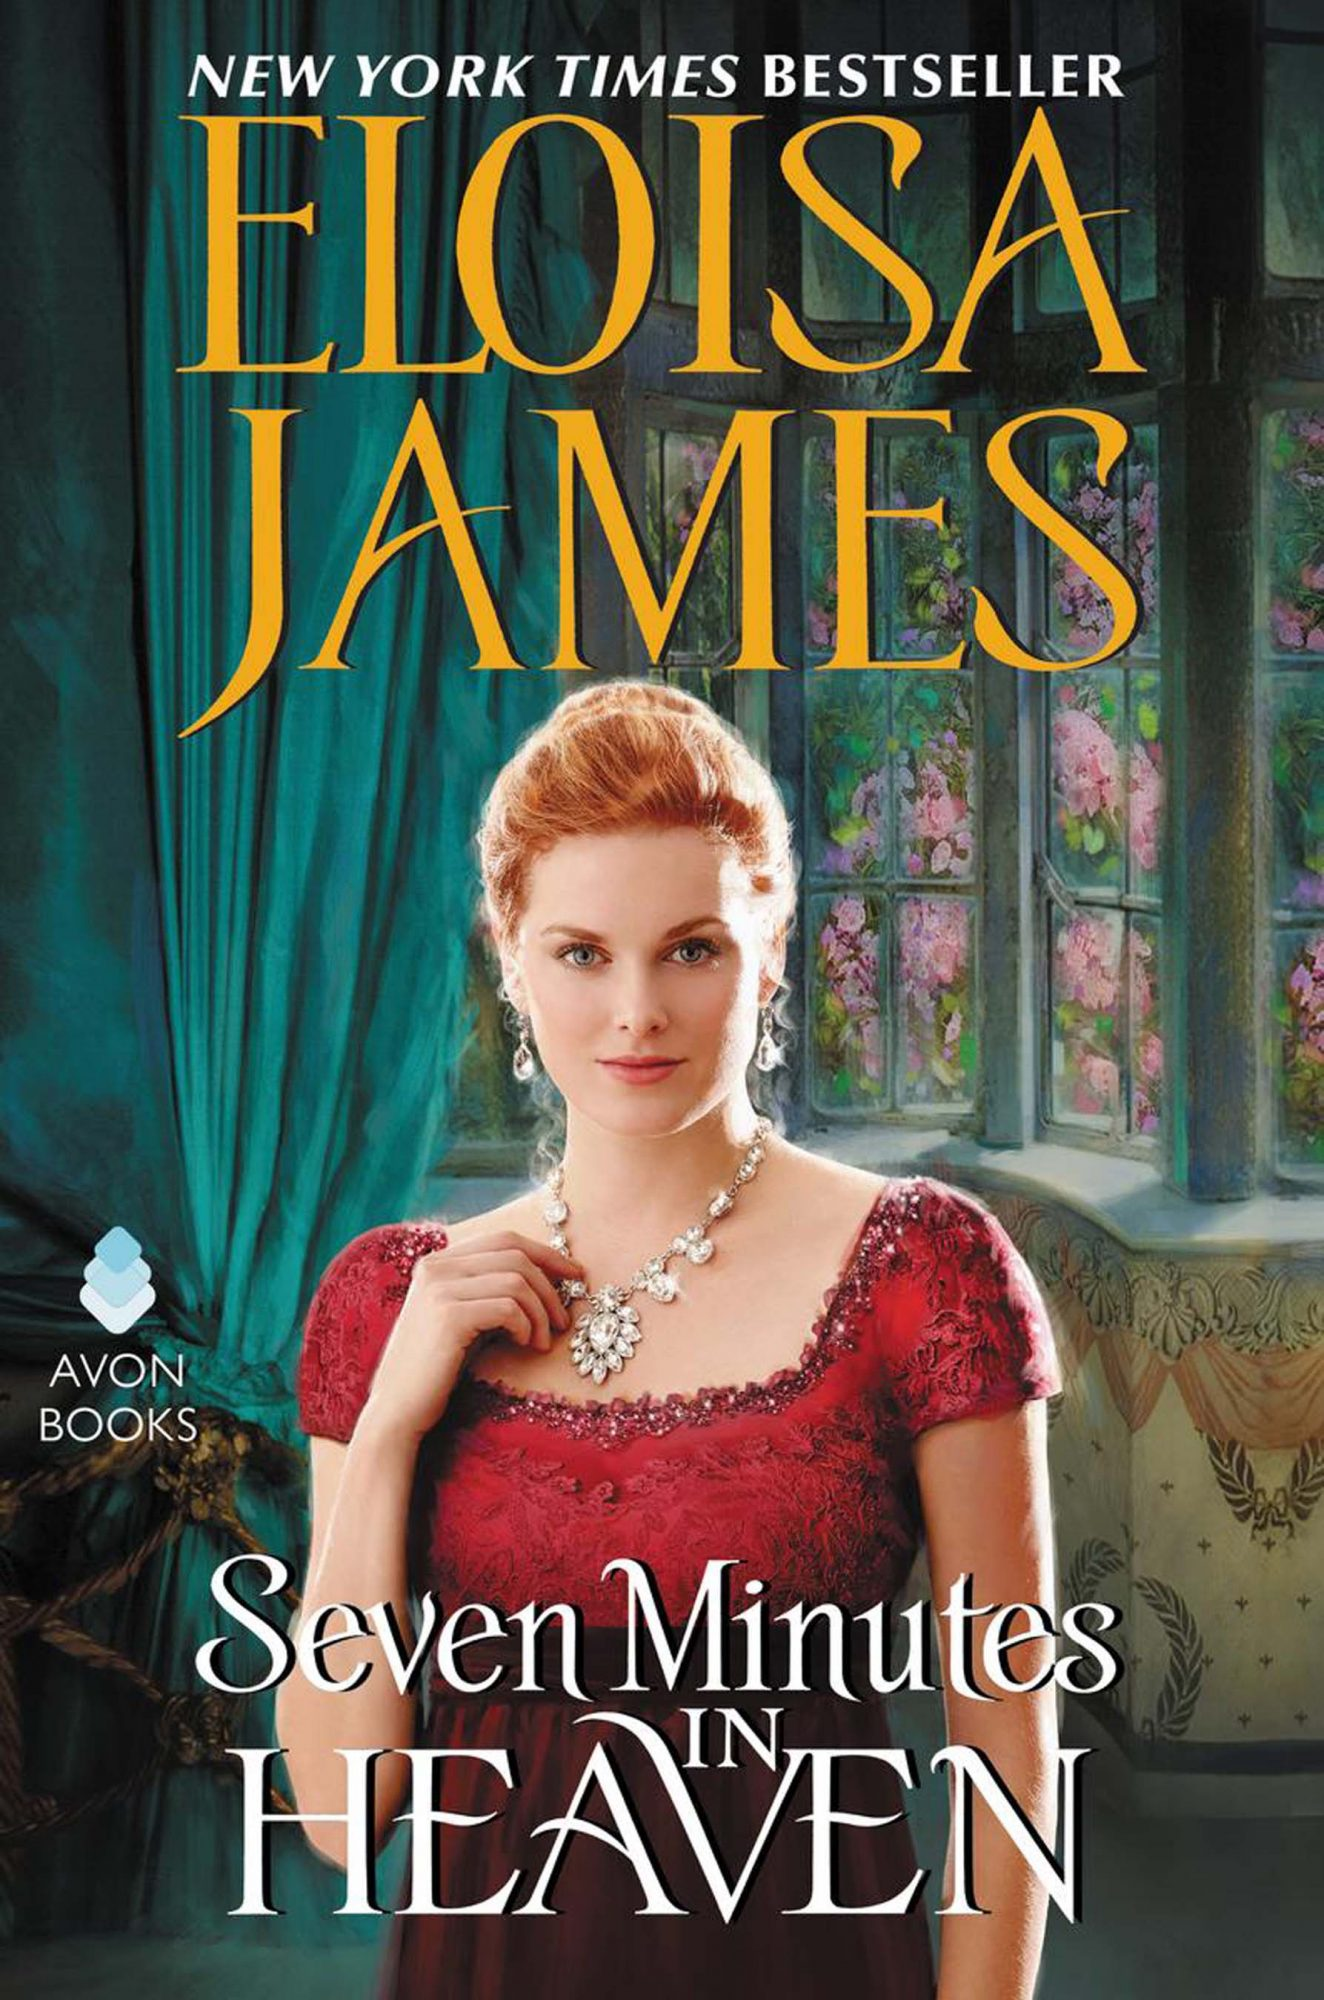 Seven Minutes in Heaven, by Eloisa James